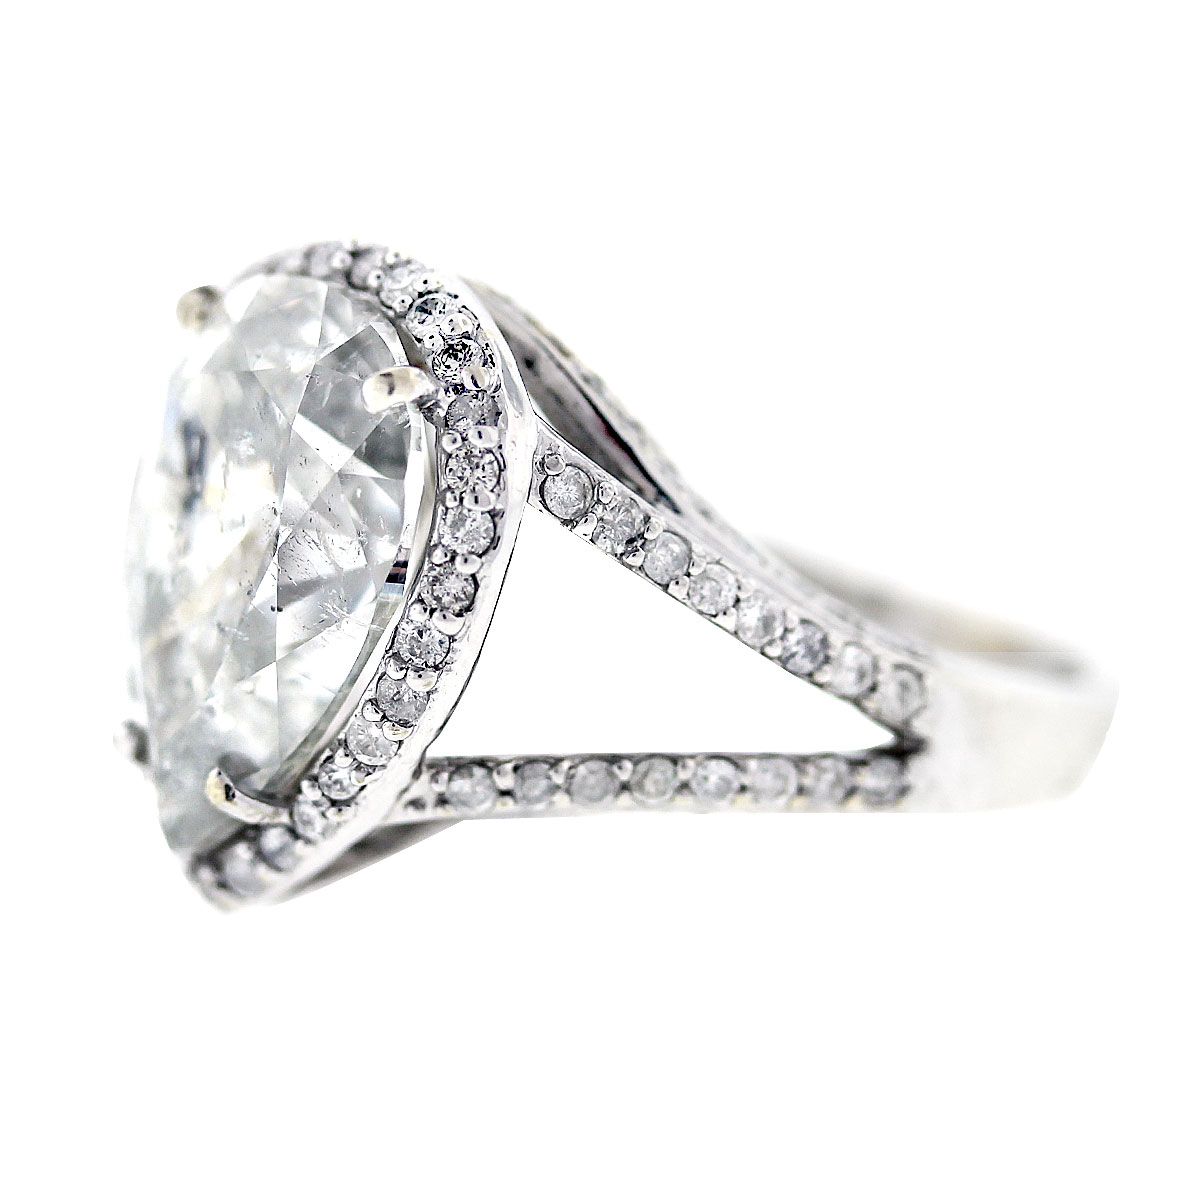 Pear Shaped Halo Engagement Ring: White Gold Pear Shaped Diamond Halo Style Pave Engagement Ring